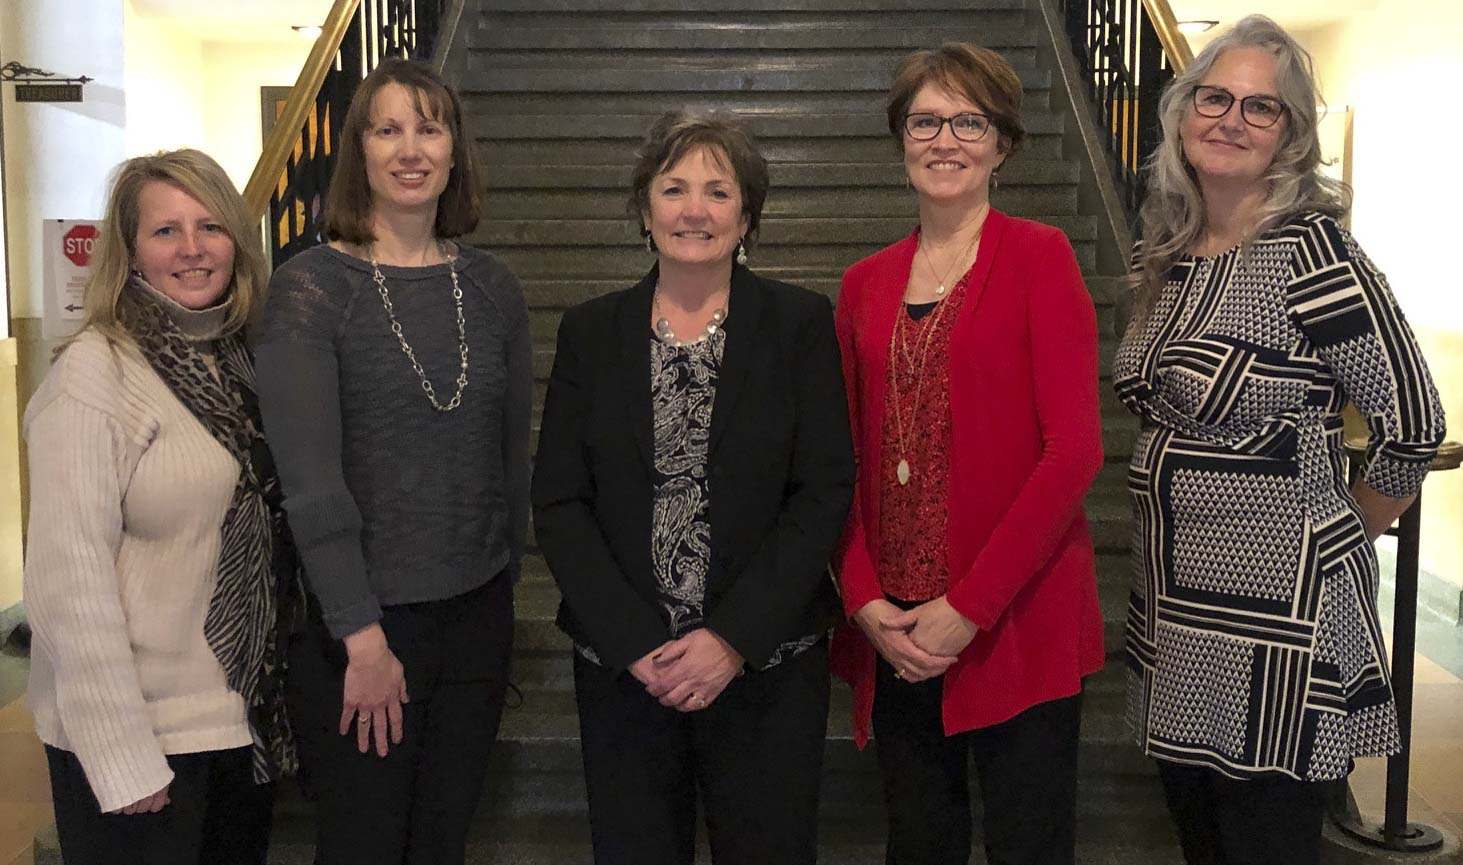 On Dec. 30, the Auditor's Office held an open house event commemorating Janine Sulzner's retirement as county auditor. From left are Deputy Auditors Vicki Starn and Michele Lubben, Sulzner, and Deputy Auditors Kim Sorgenfrey and Gwyn Gapinski. (Photo submitted)